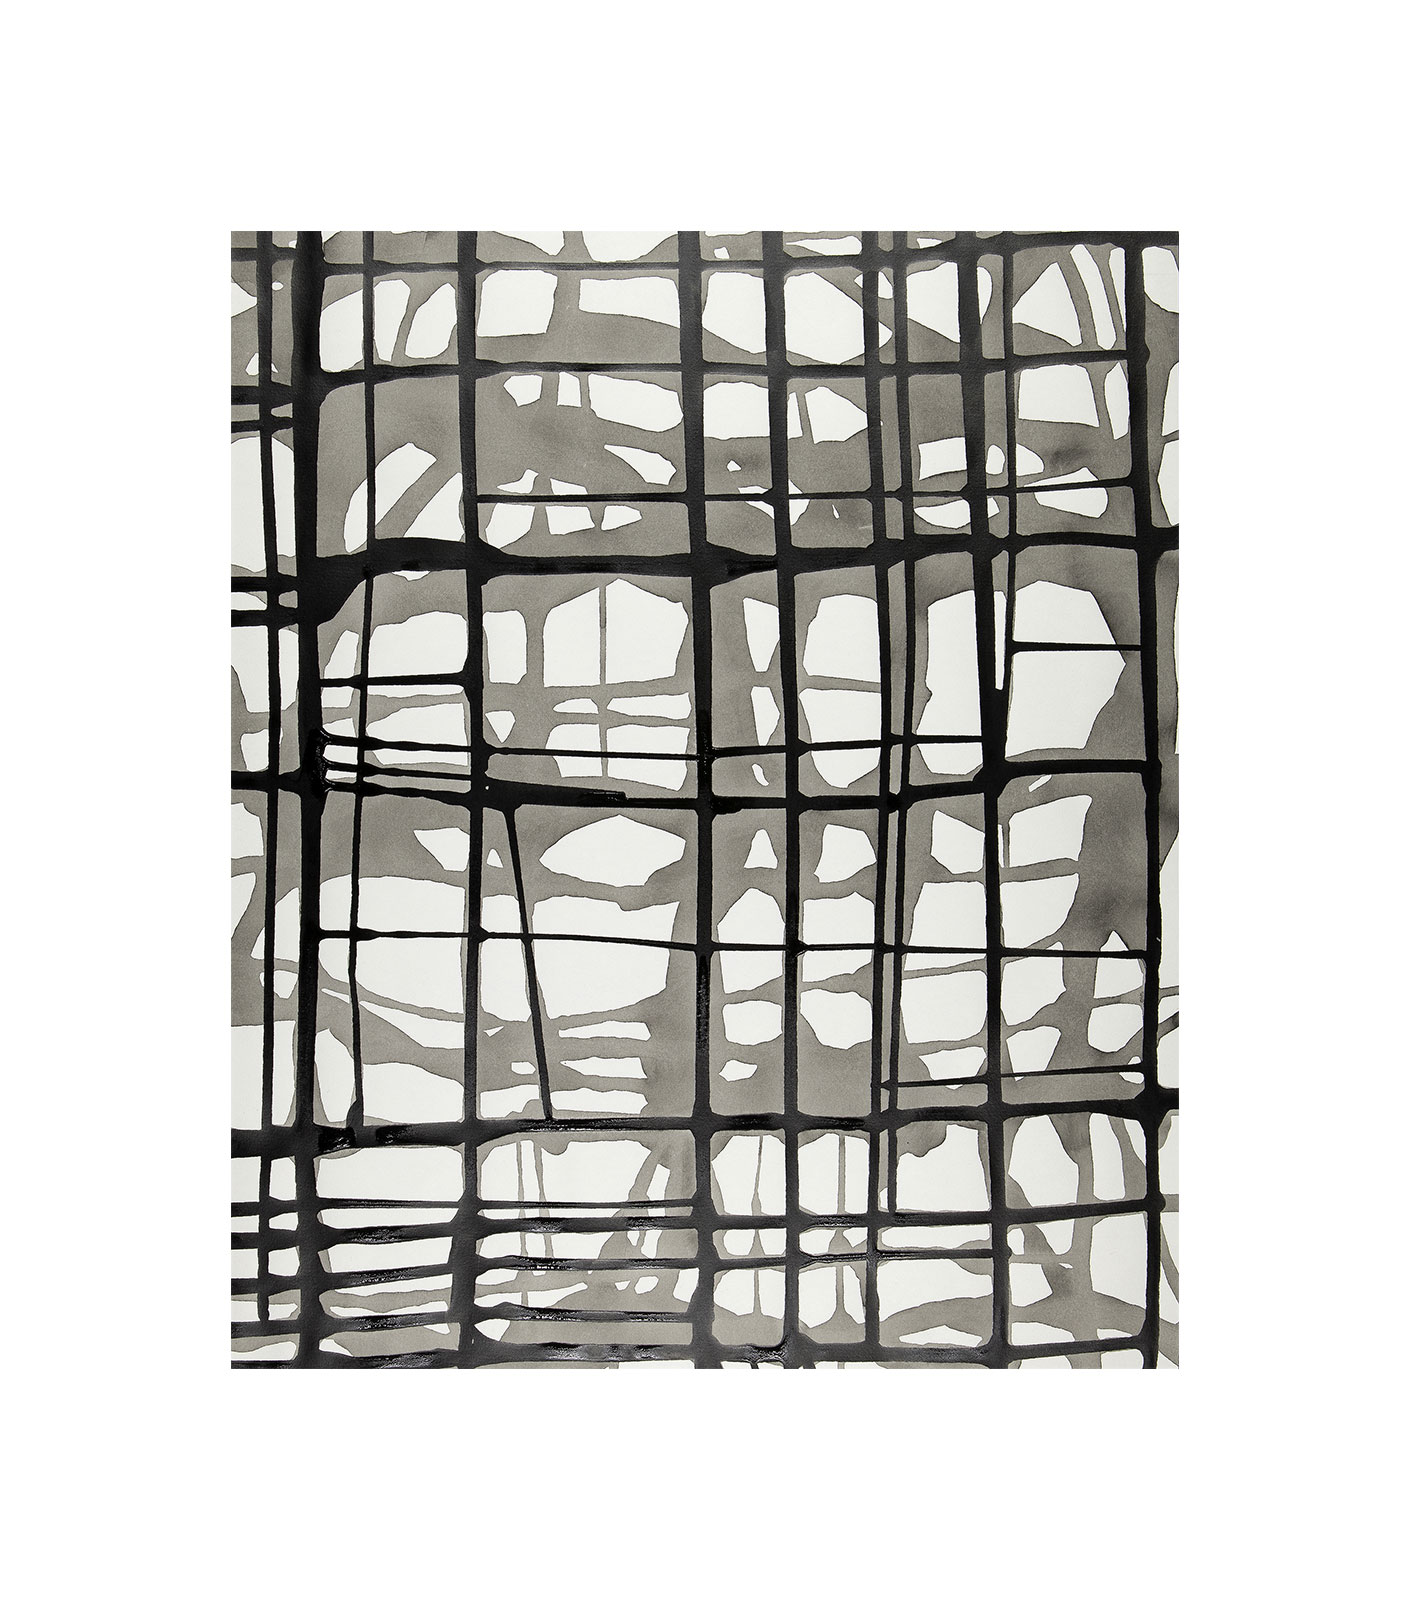 Ink 3.2, indian ink on paper, wash drawing, black and white artwork, jf escande, contemporary art